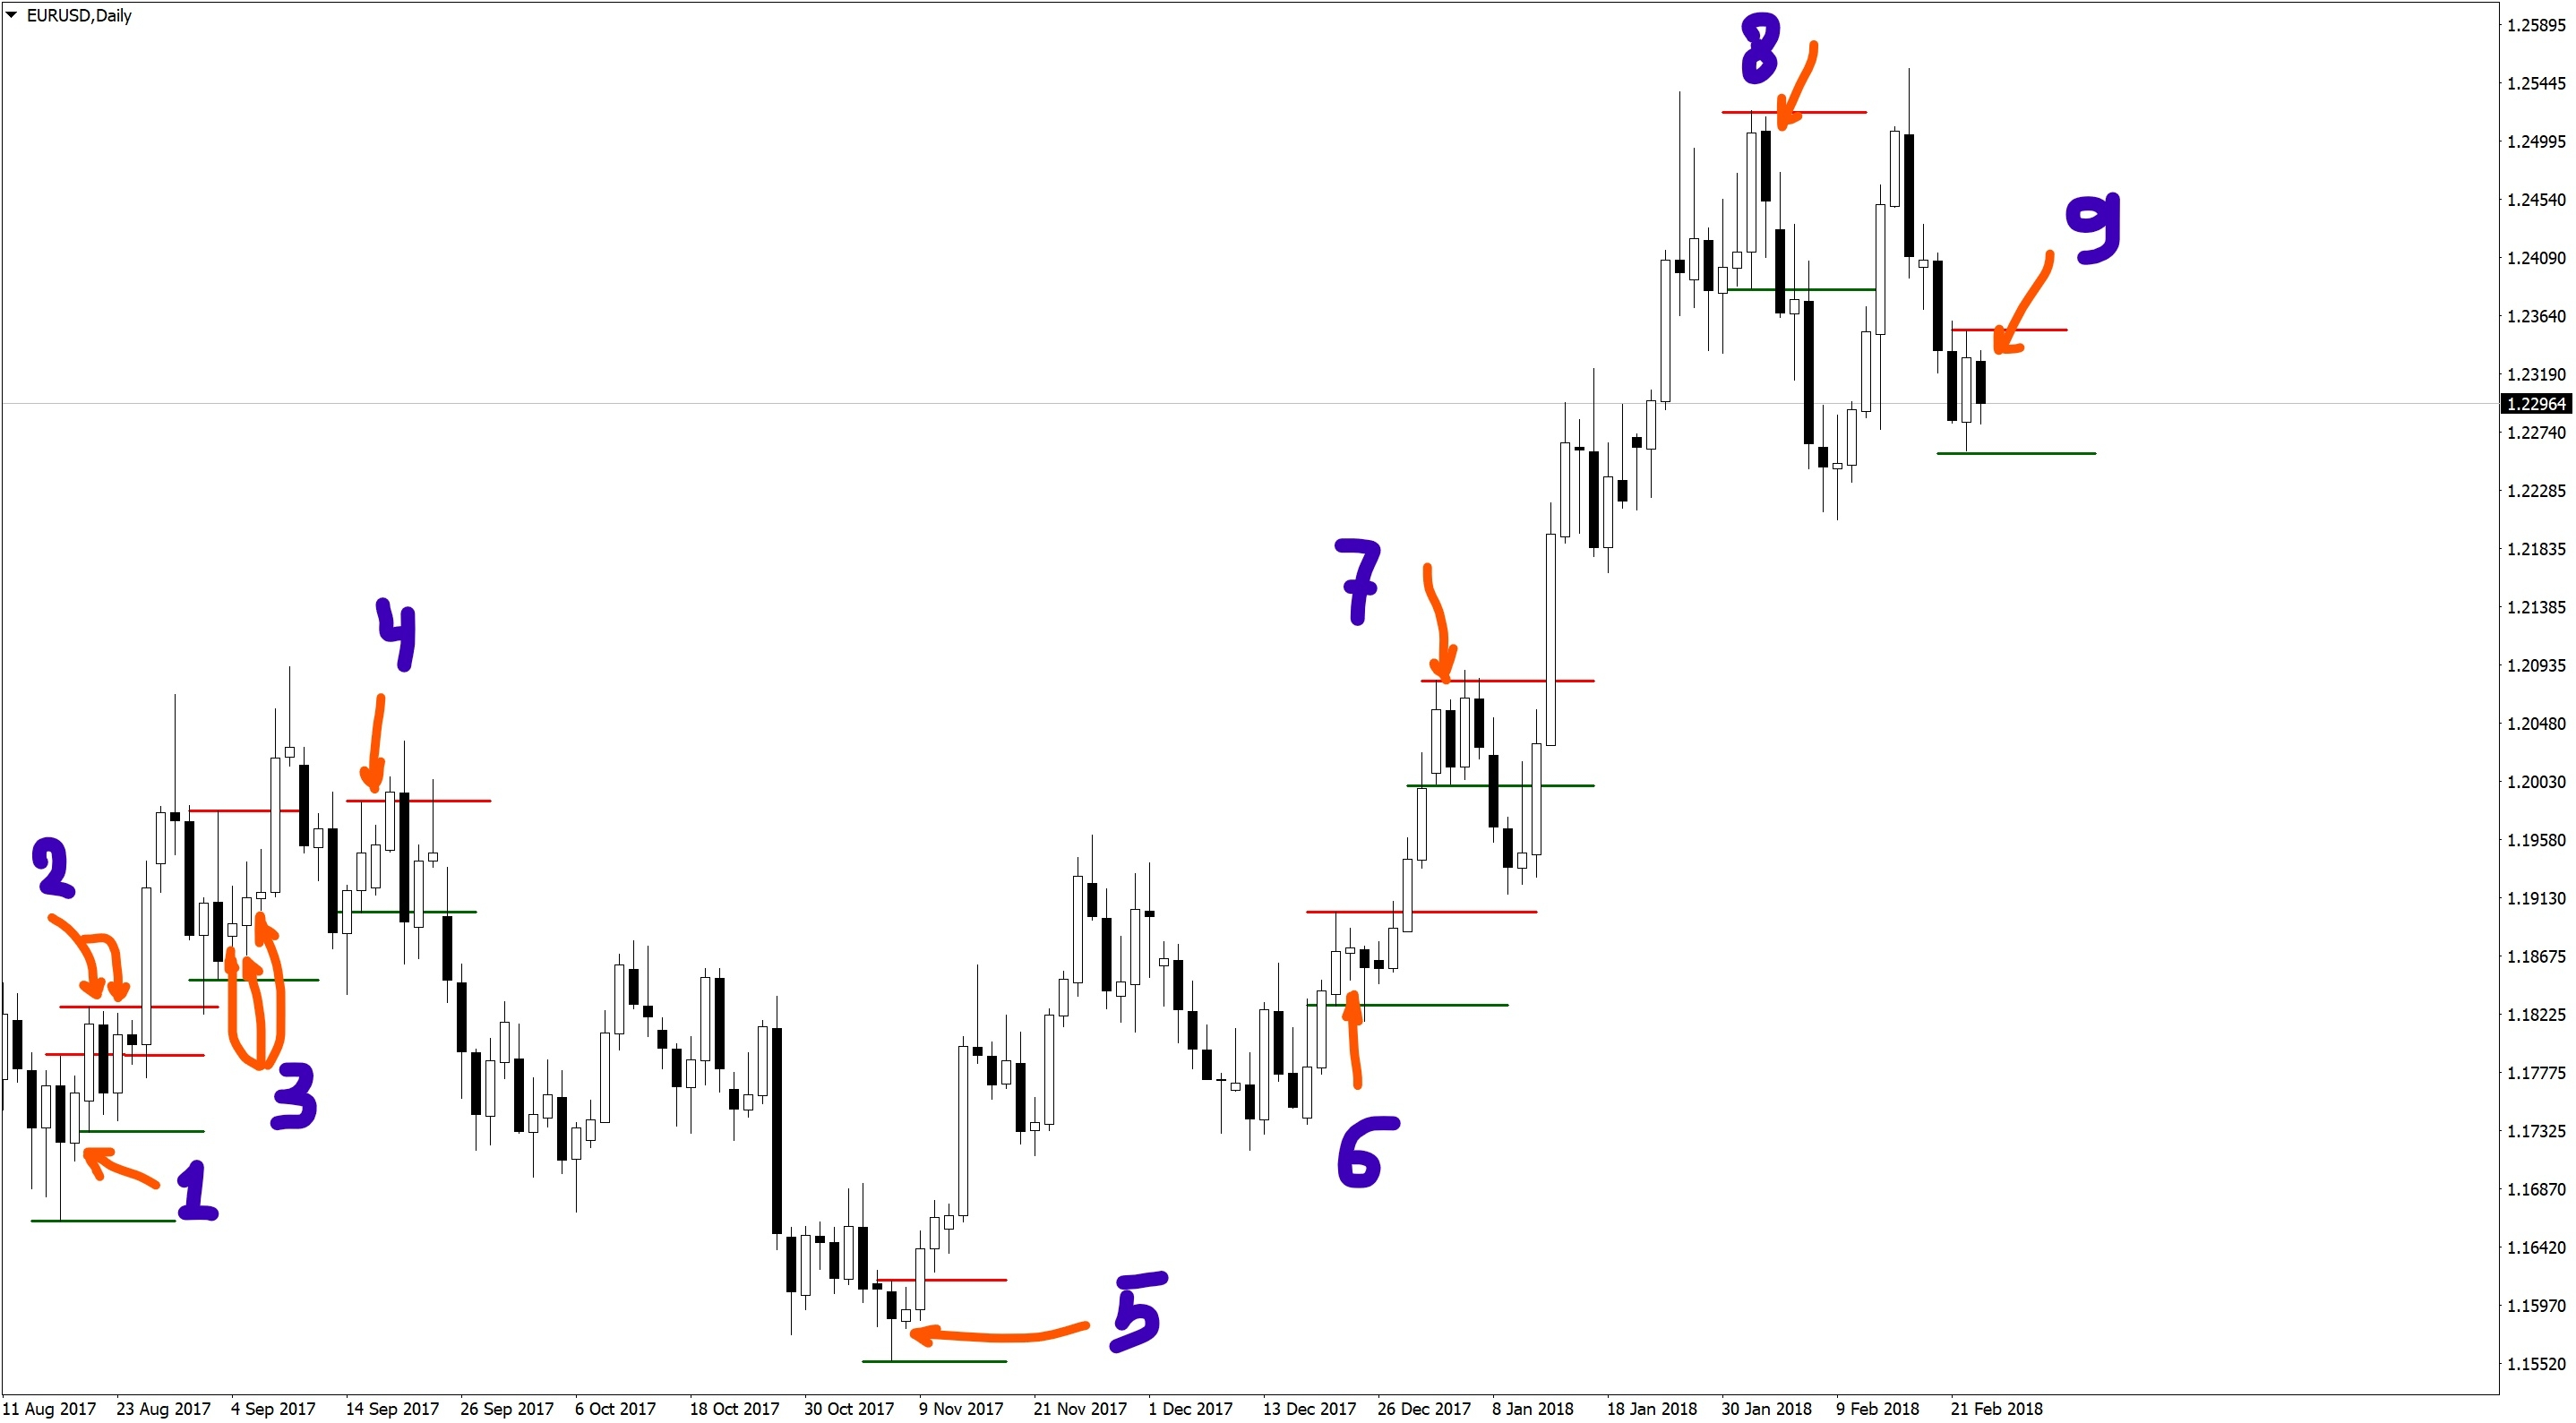 Inside Bar on EURUSD Daily